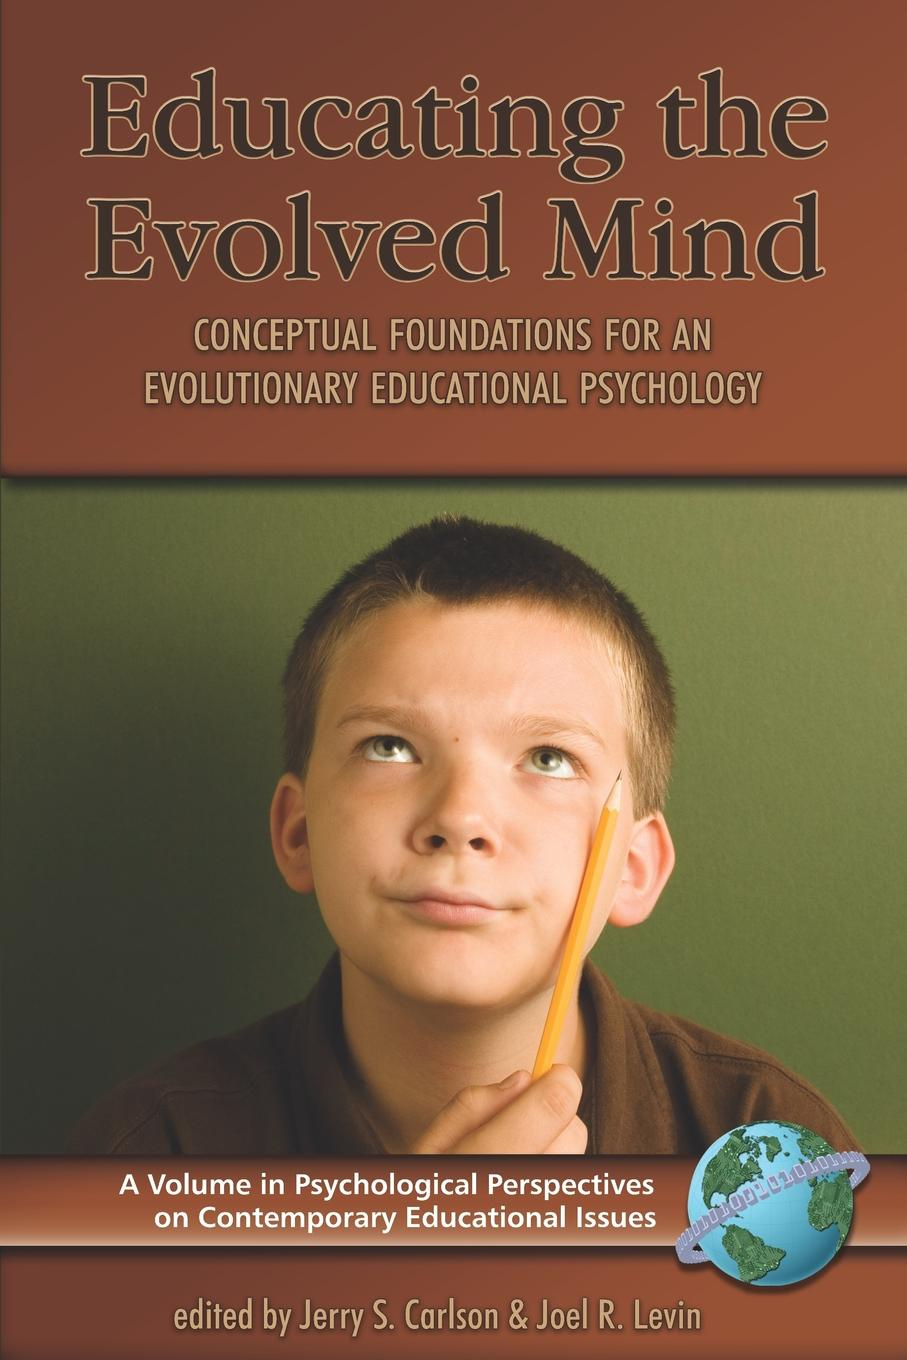 Educating the Evolved Mind. Conceptual Foundations for an Evolutionary Educational Psychology (PB)